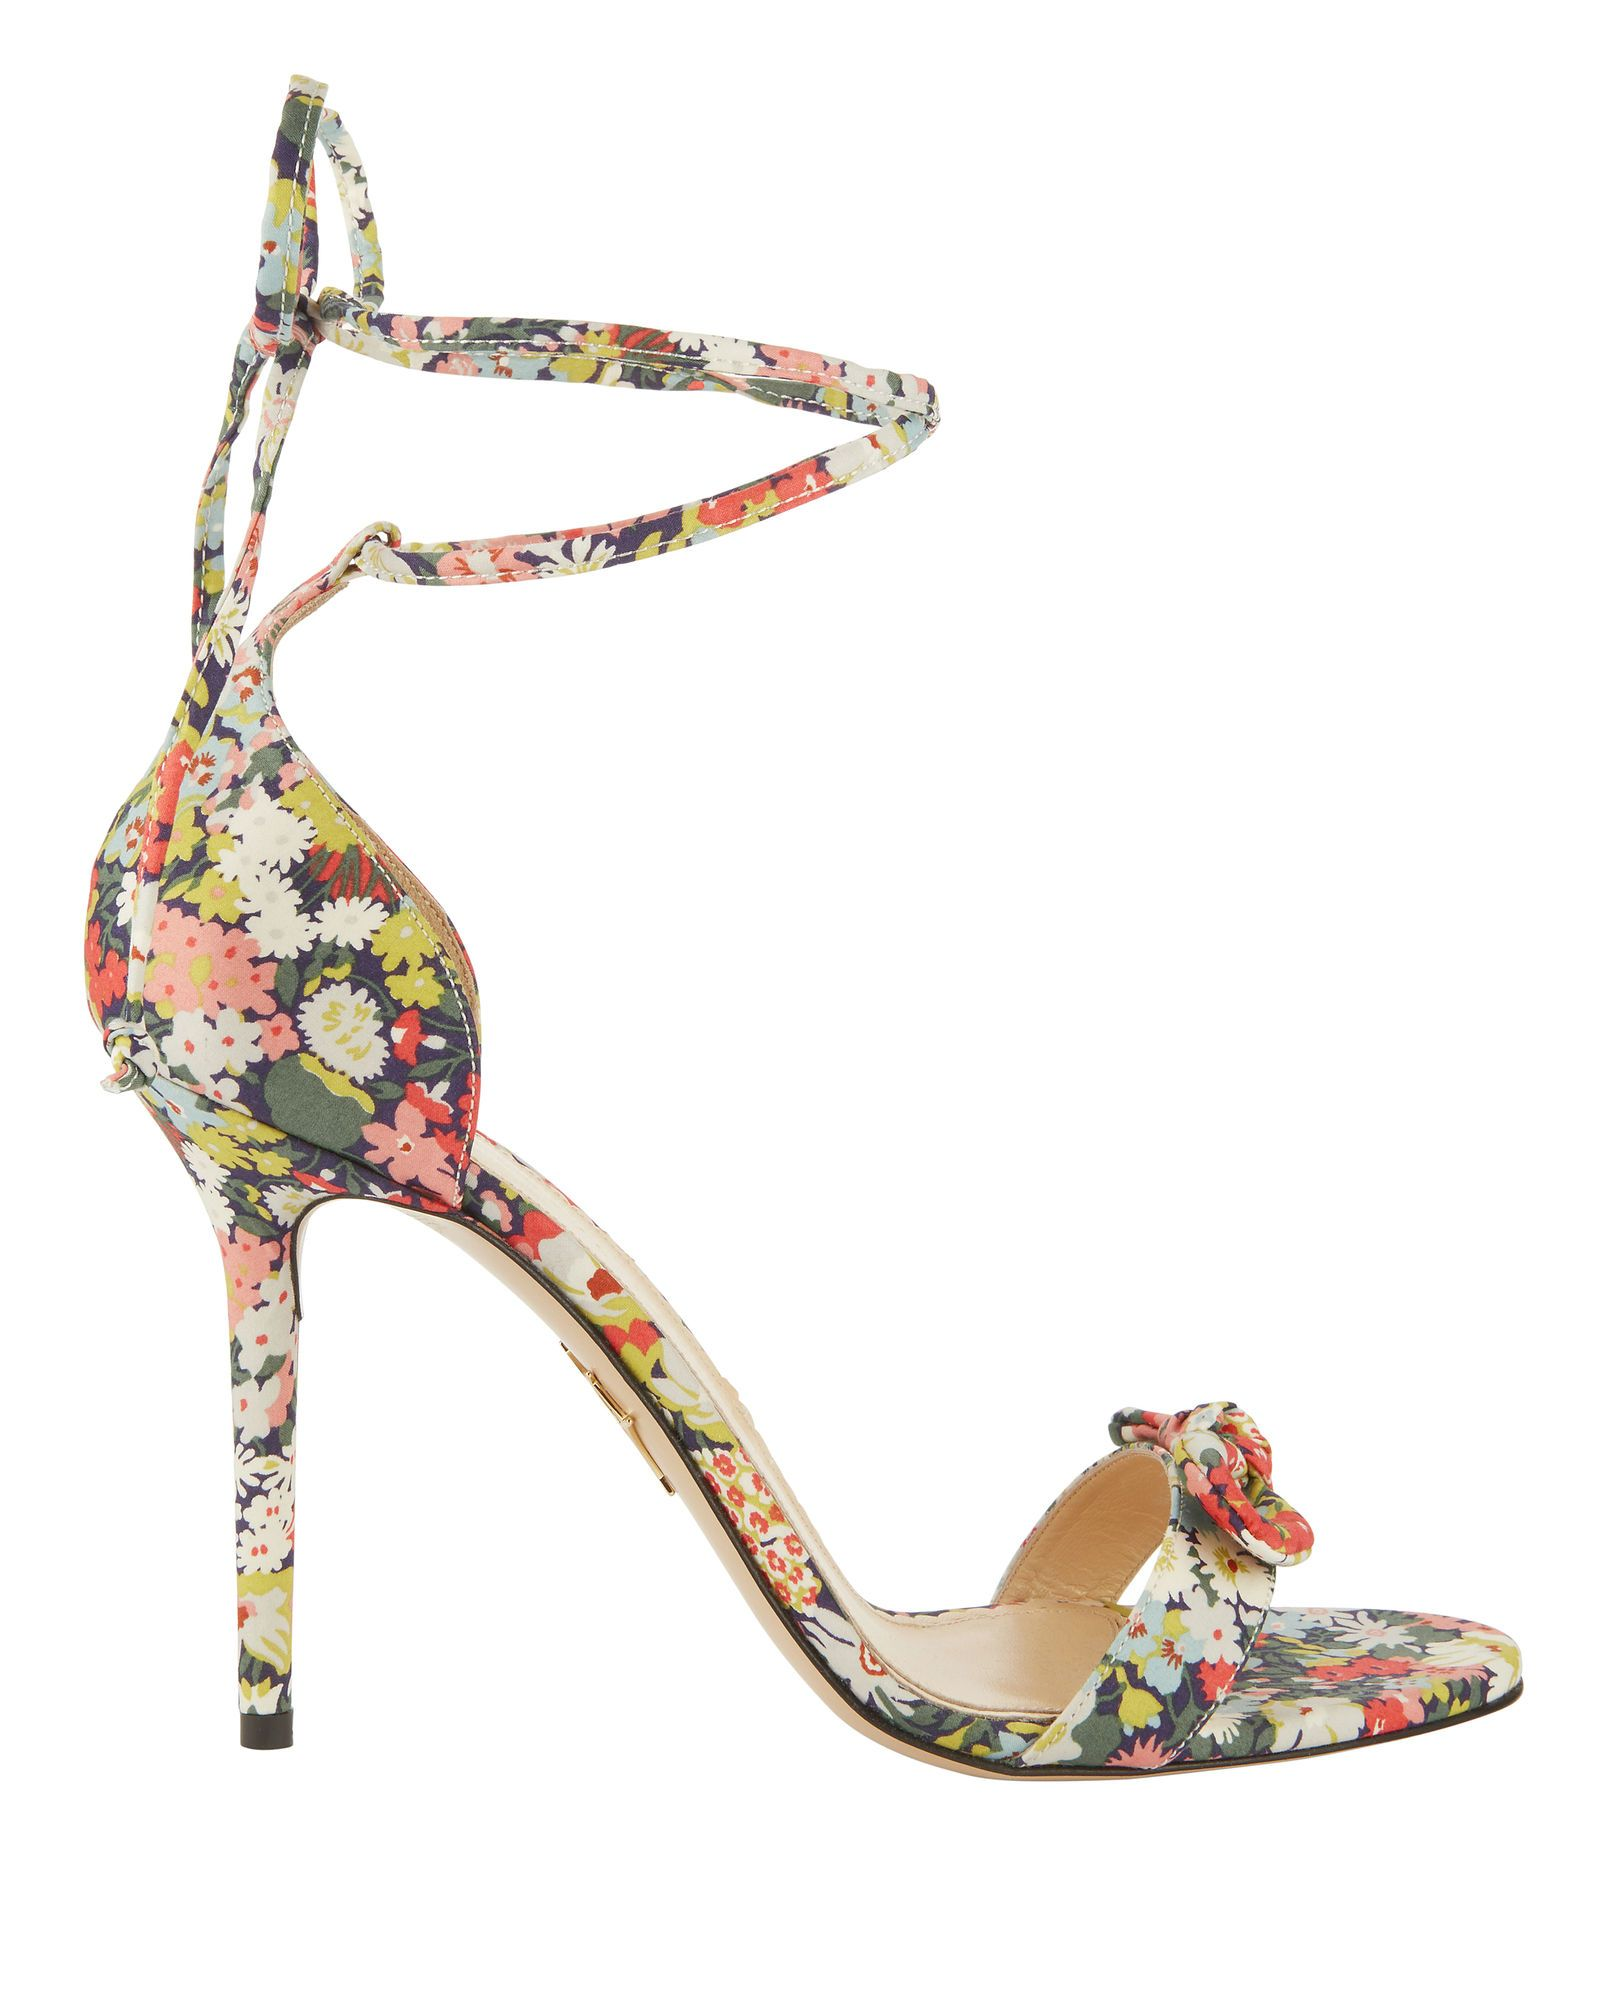 63c8e9f2c26a0 CHARLOTTE OLYMPIA Shelley Floral Sandals.  charlotteolympia  shoes